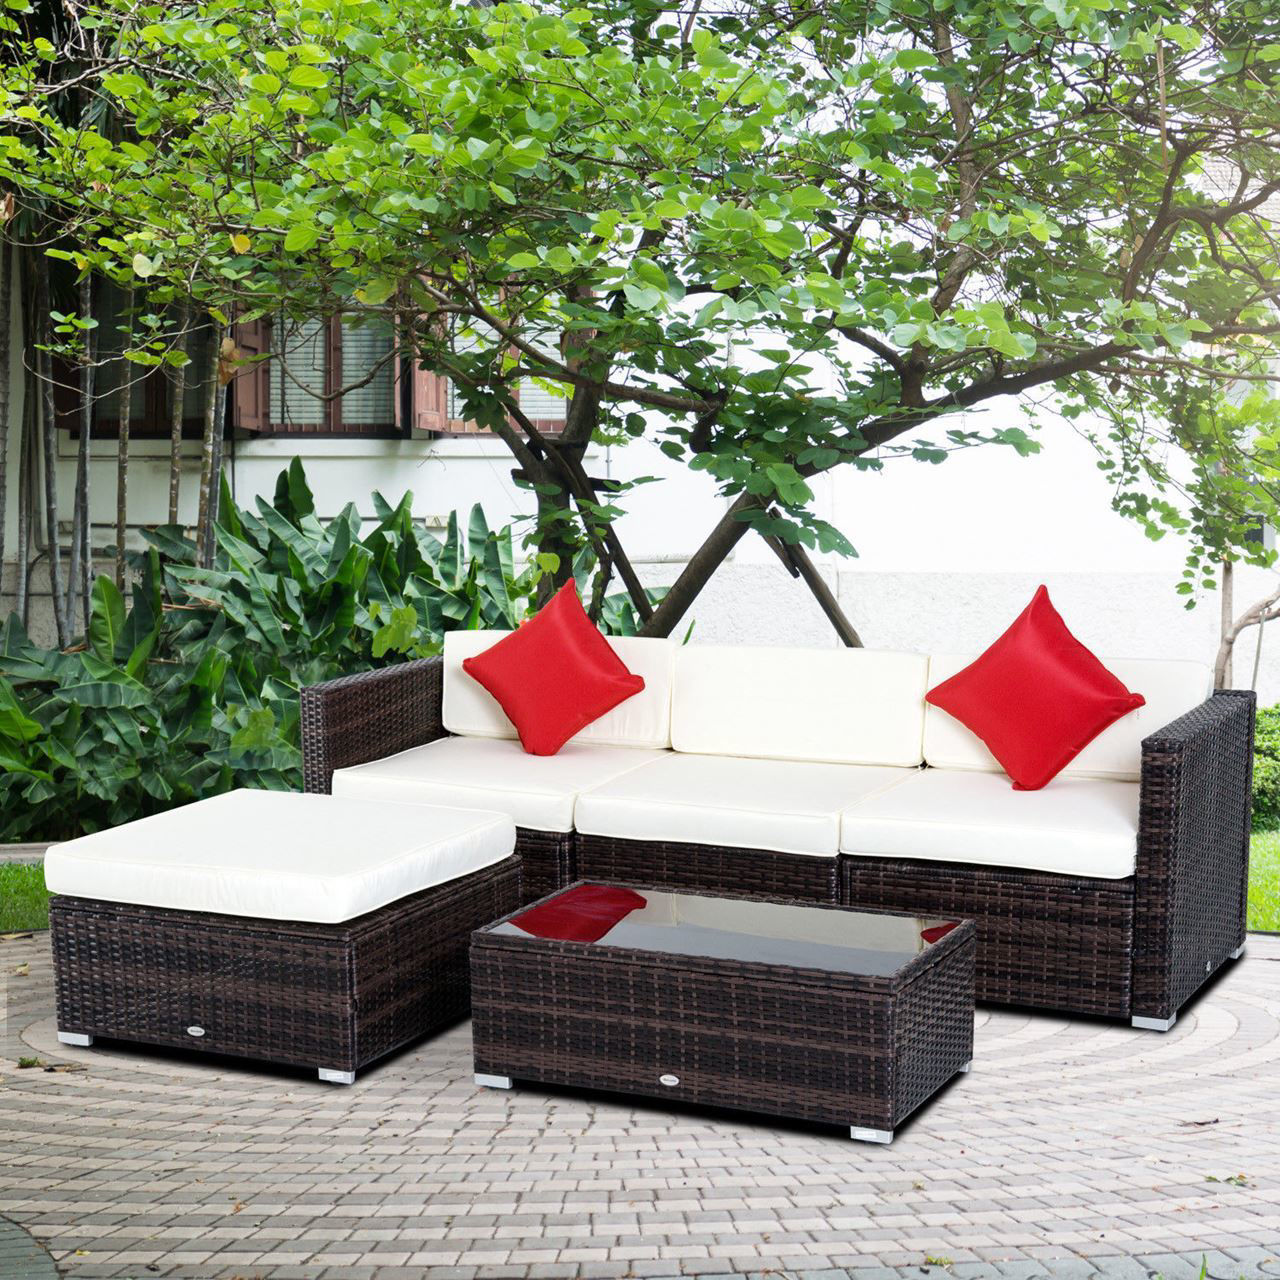 Picture of Outdoor Patio PE Rattan Wicker 5 pc Sofa Chaise Lounge Furniture